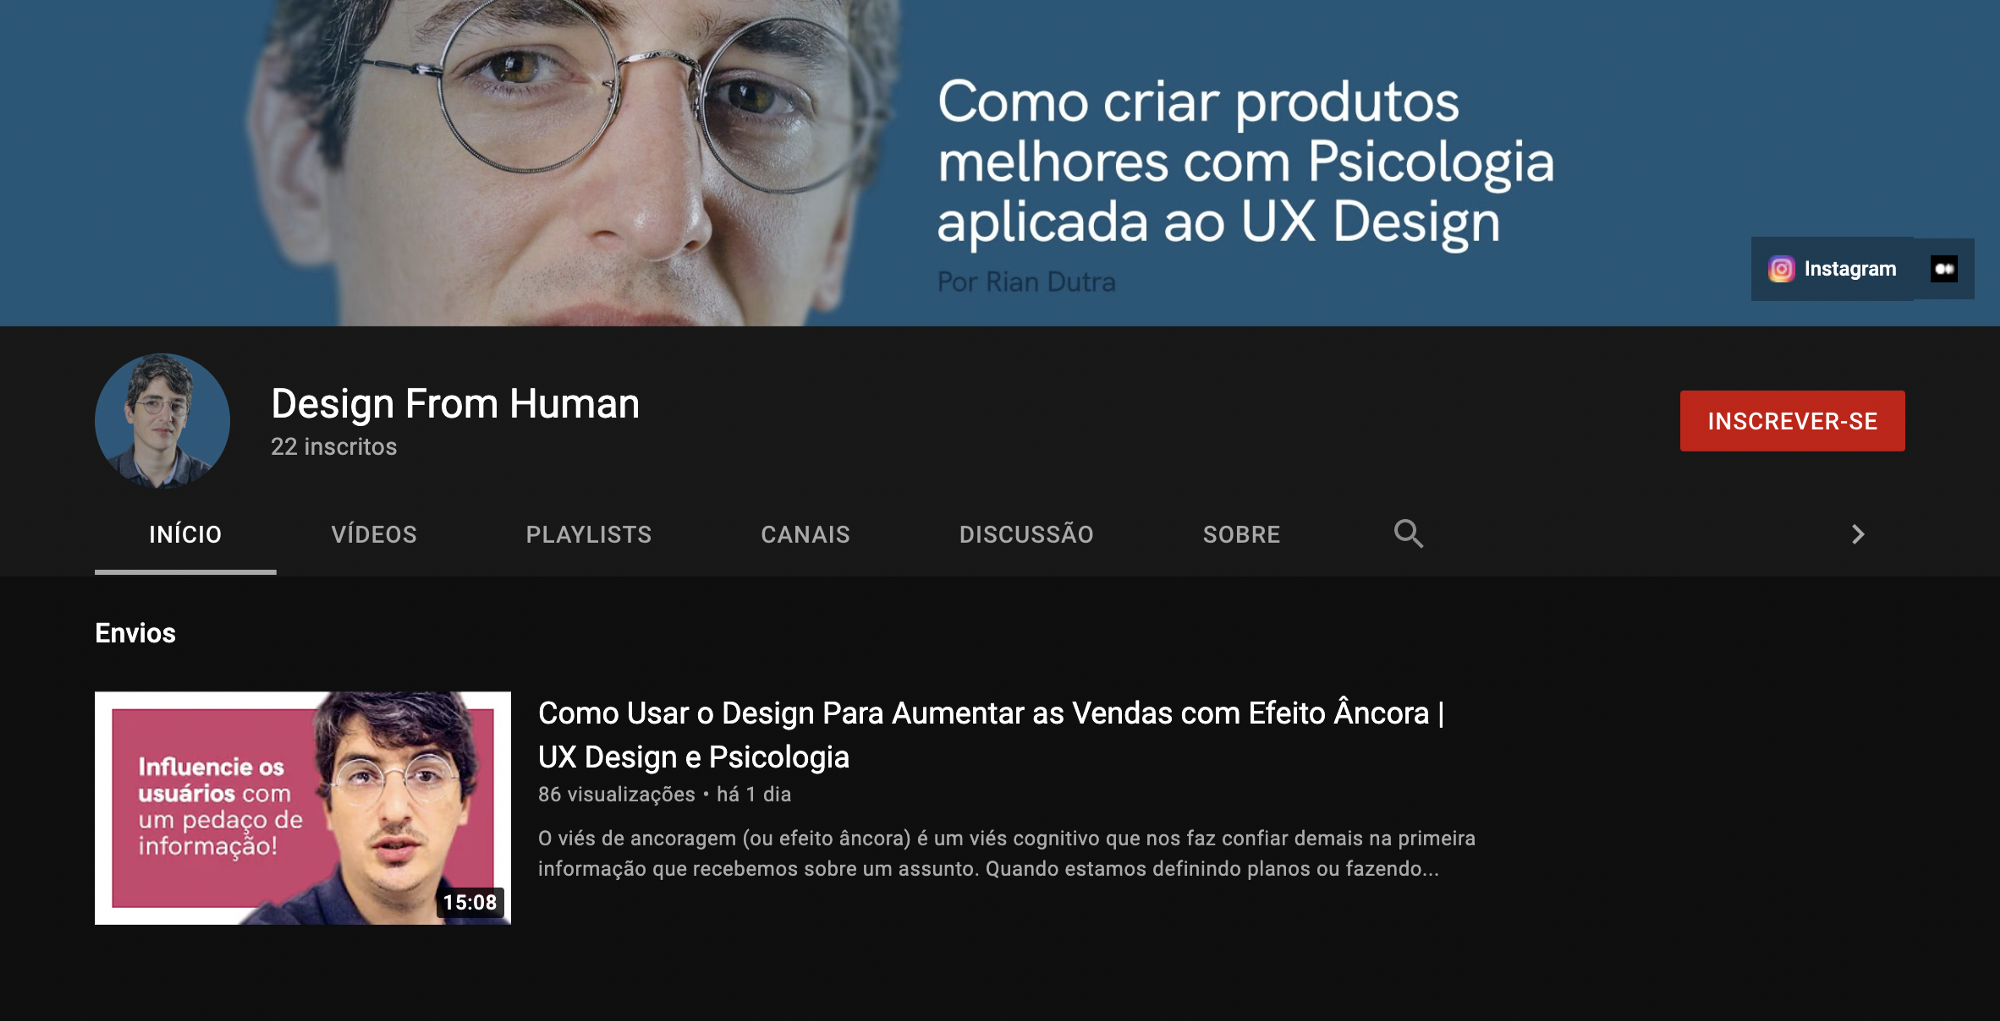 Design From Human, the Youtube channel.